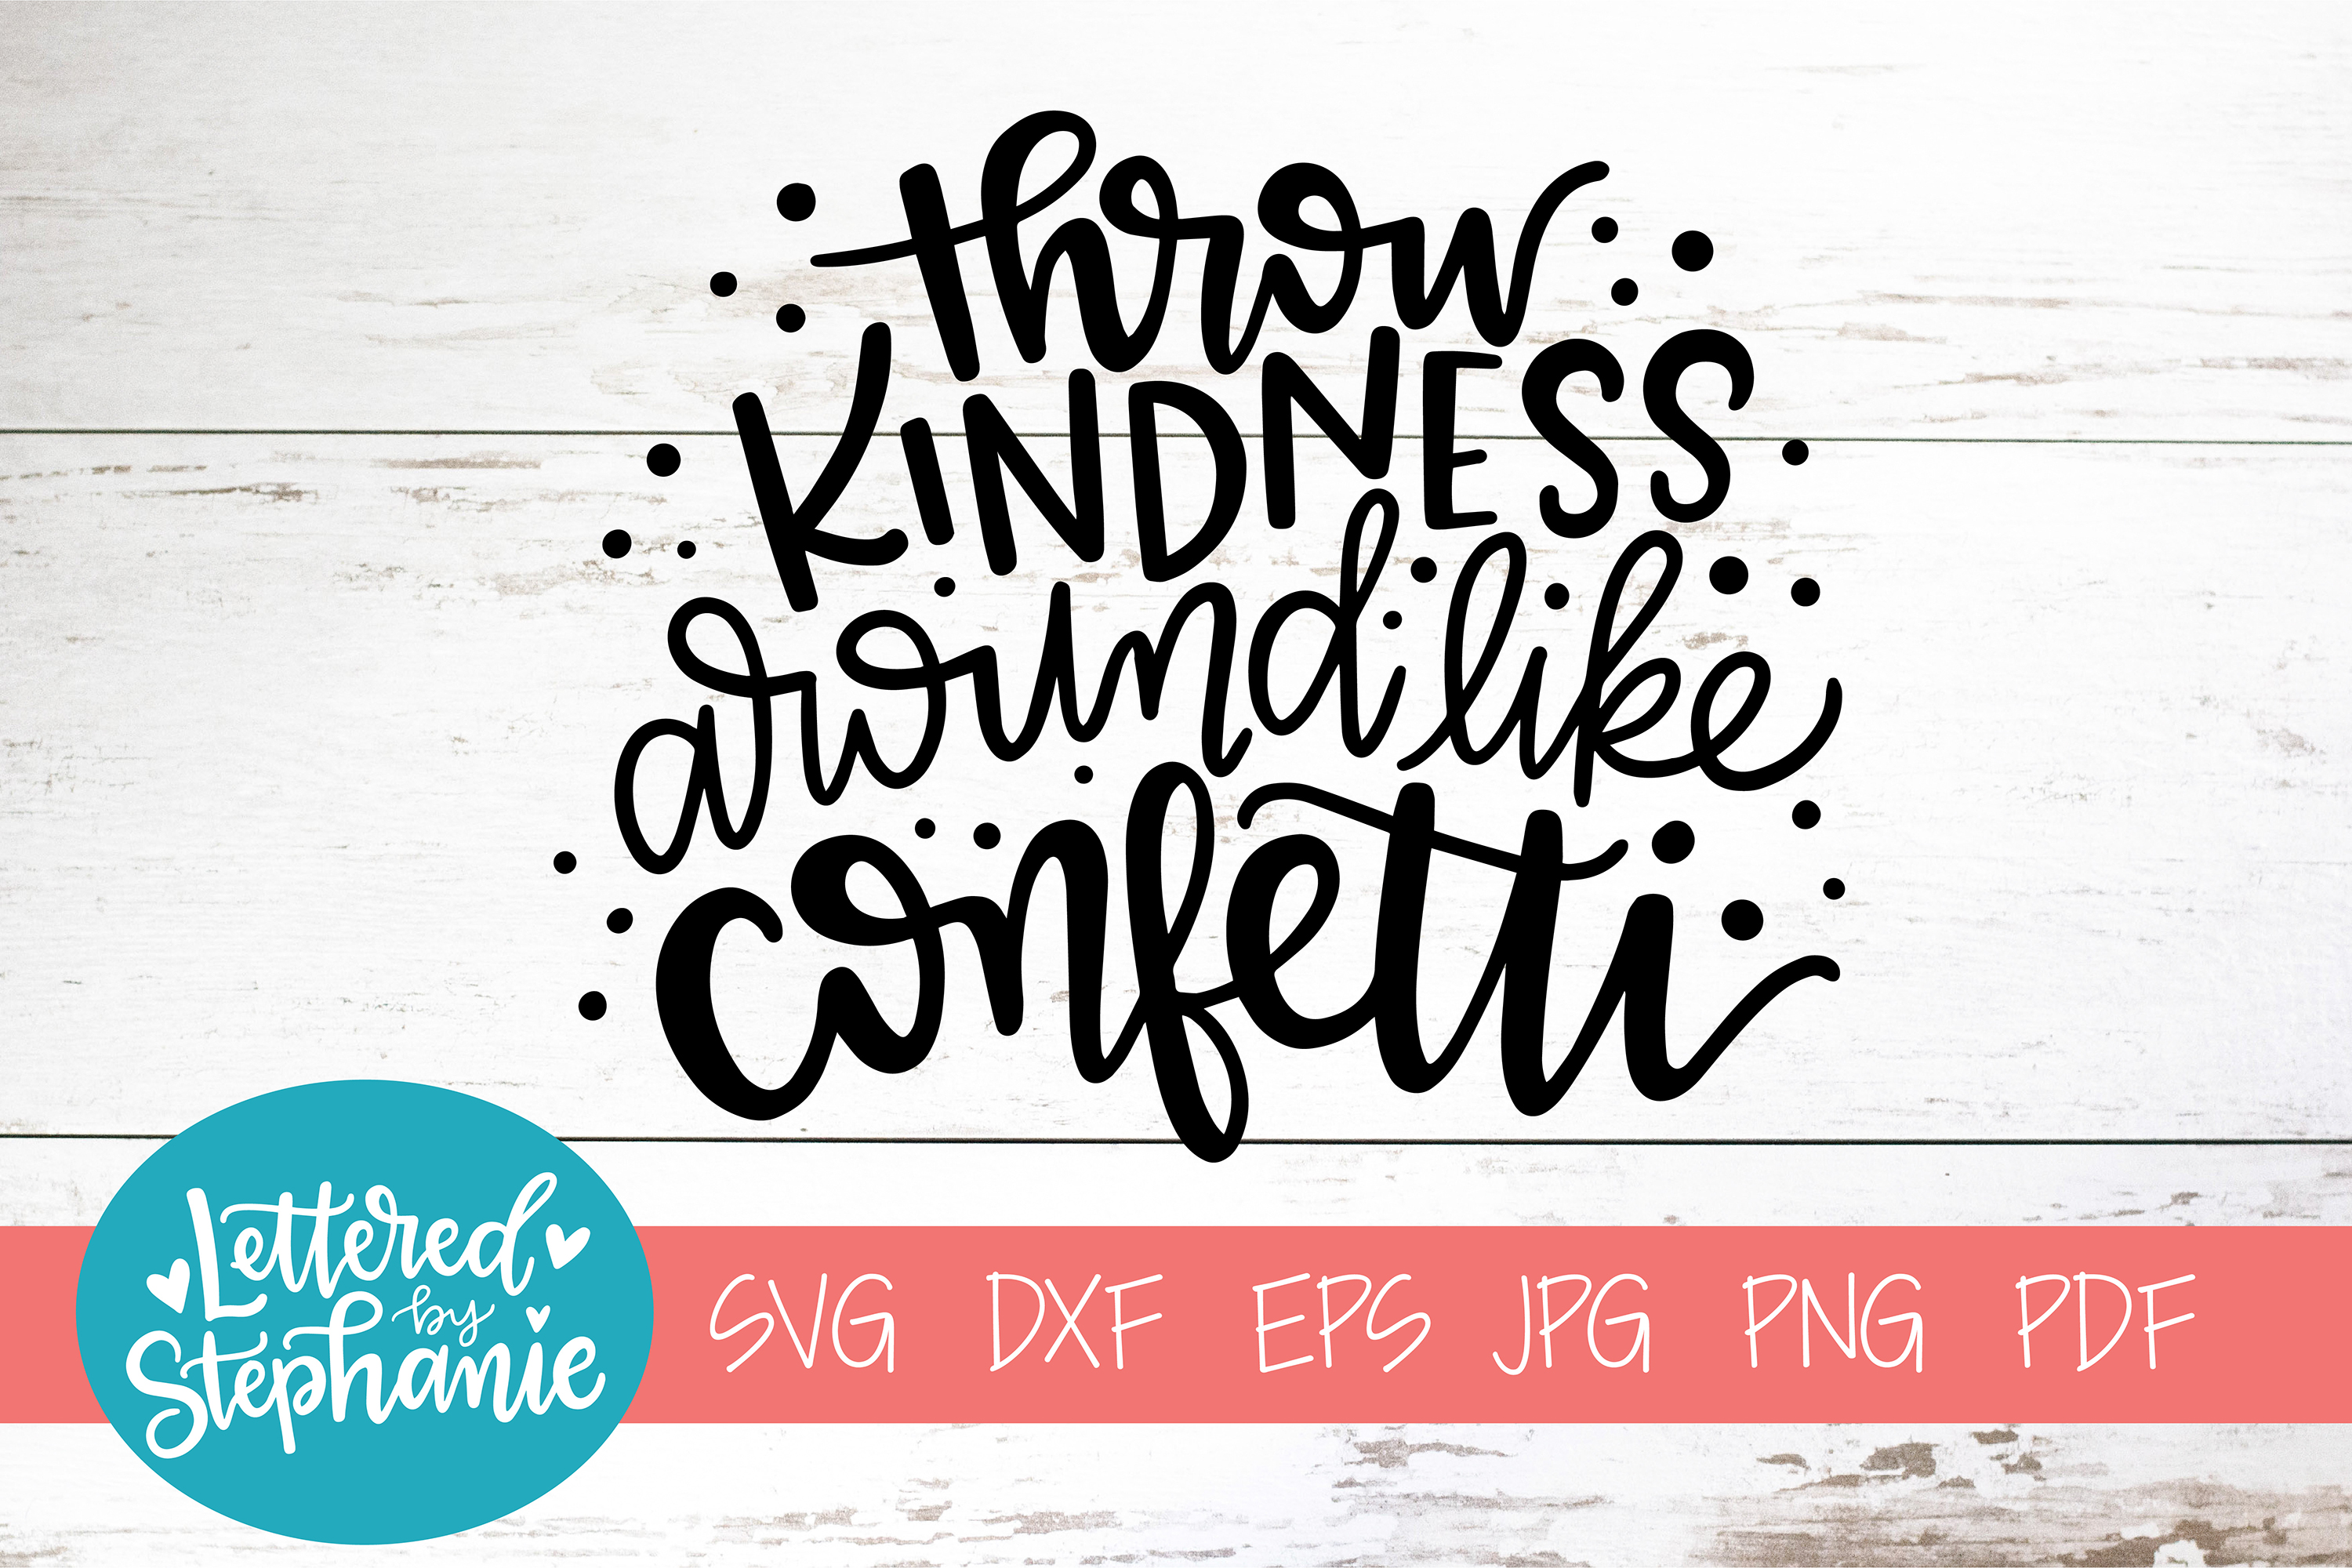 Handlettered SVG DXF, Throw kindness around like confetti